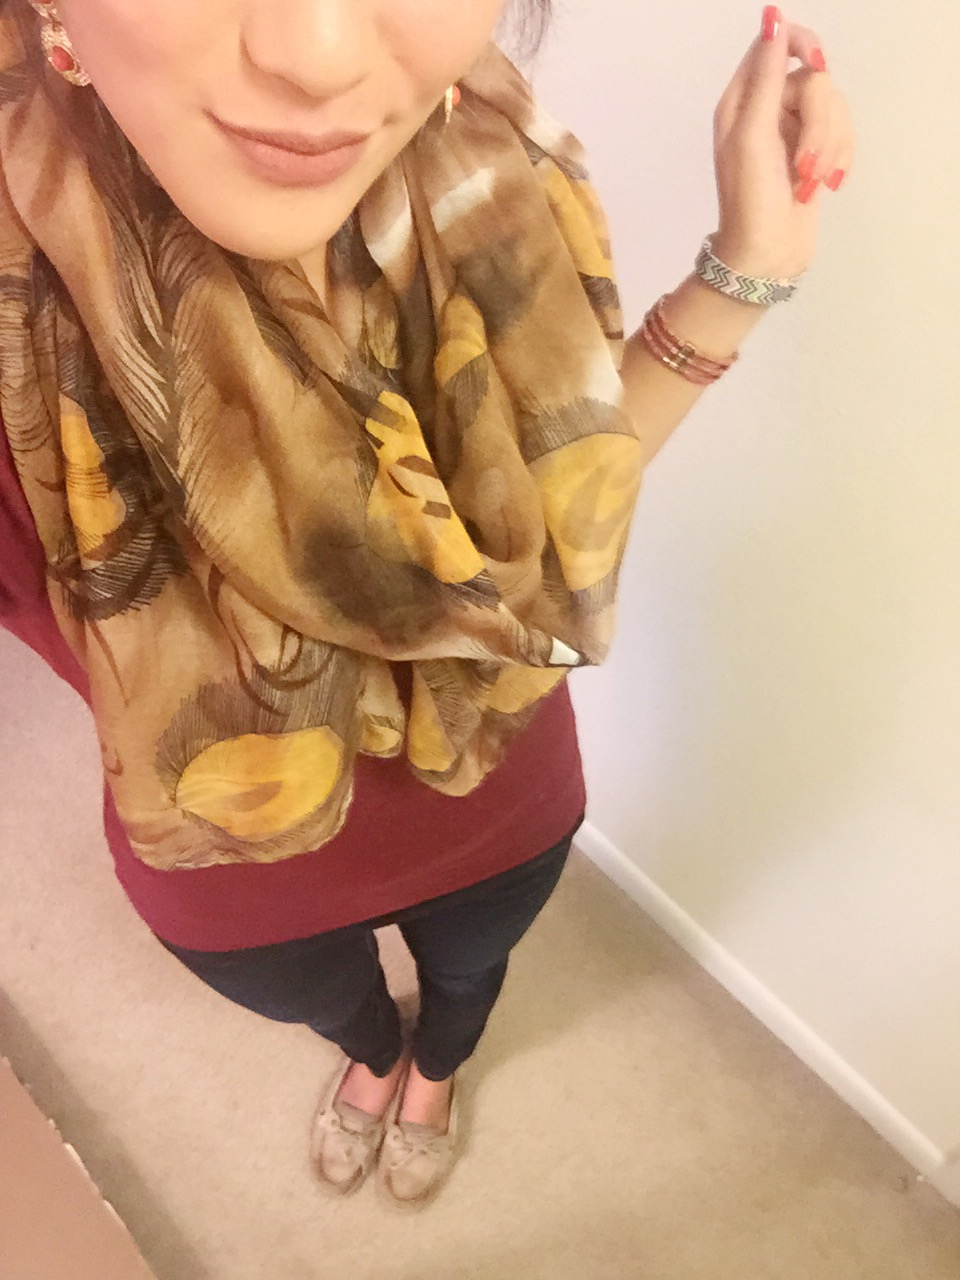 Shirt: Old Navy / Earrings: Target / Scarf: gift / Yoga Pants: Victoria's Secret / Shoes: Sperry